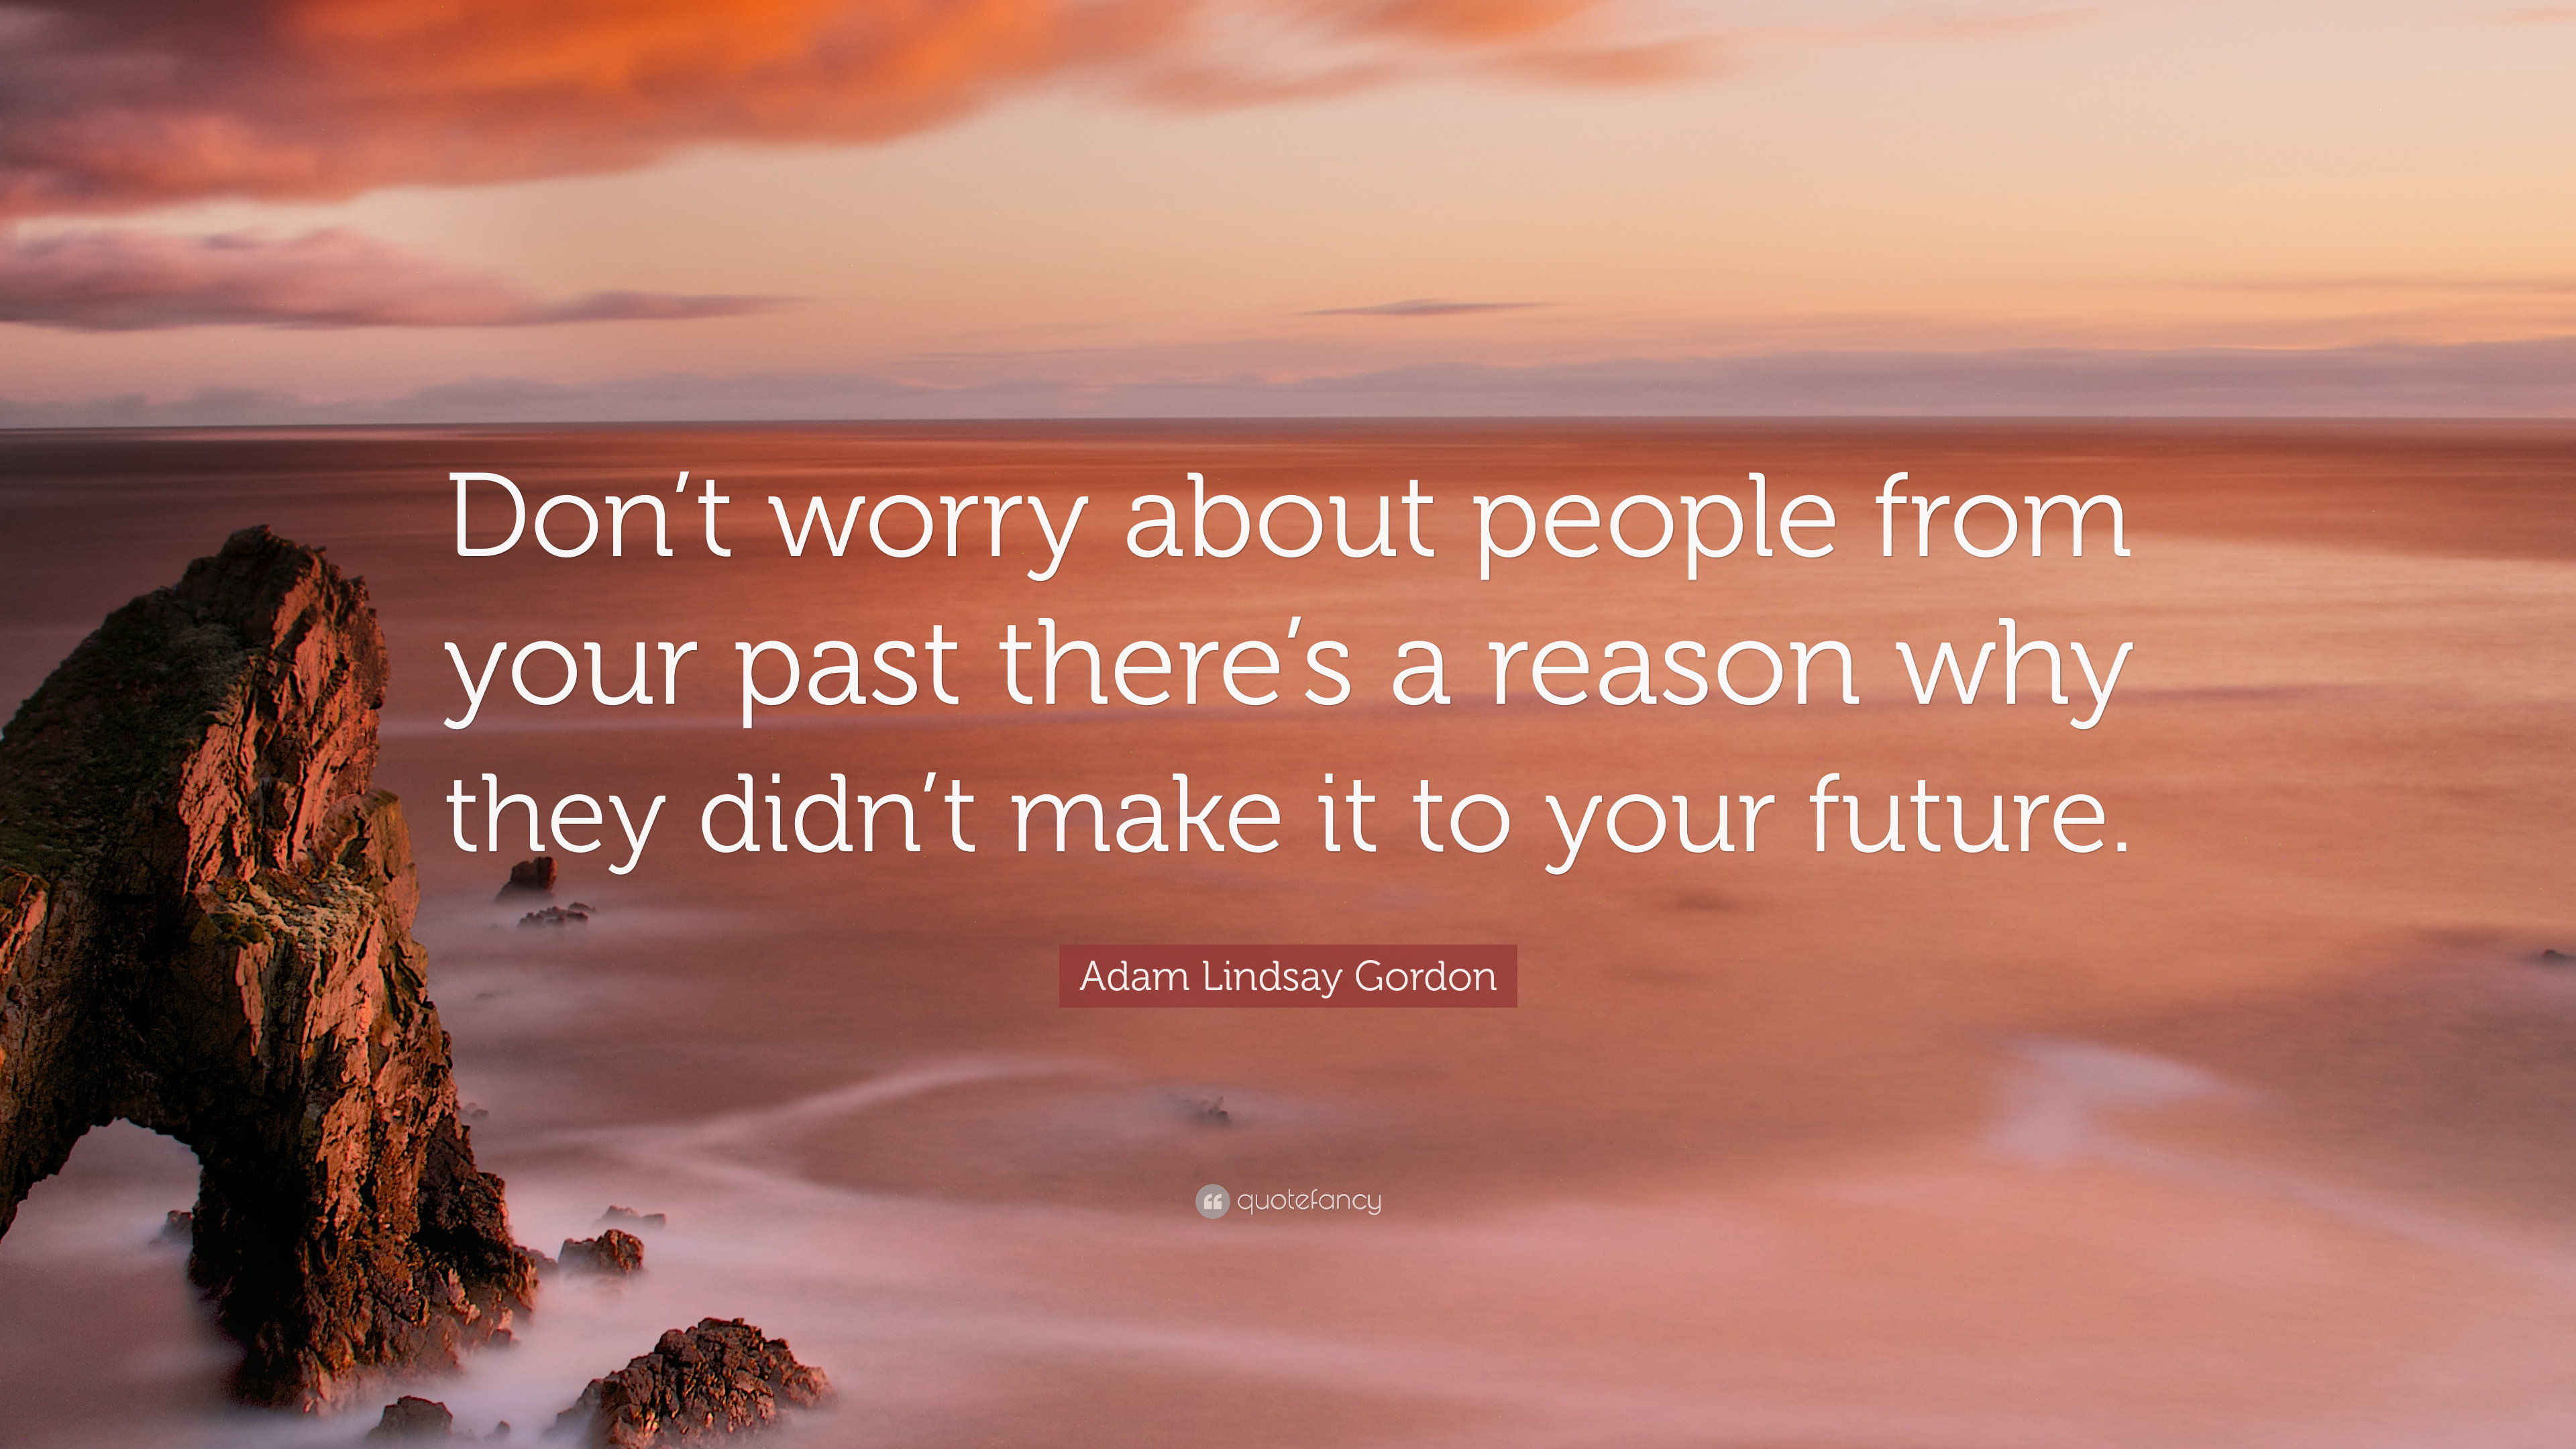 Image result for Don't worry about the people in your past there's a reason they didn't make it to your future.